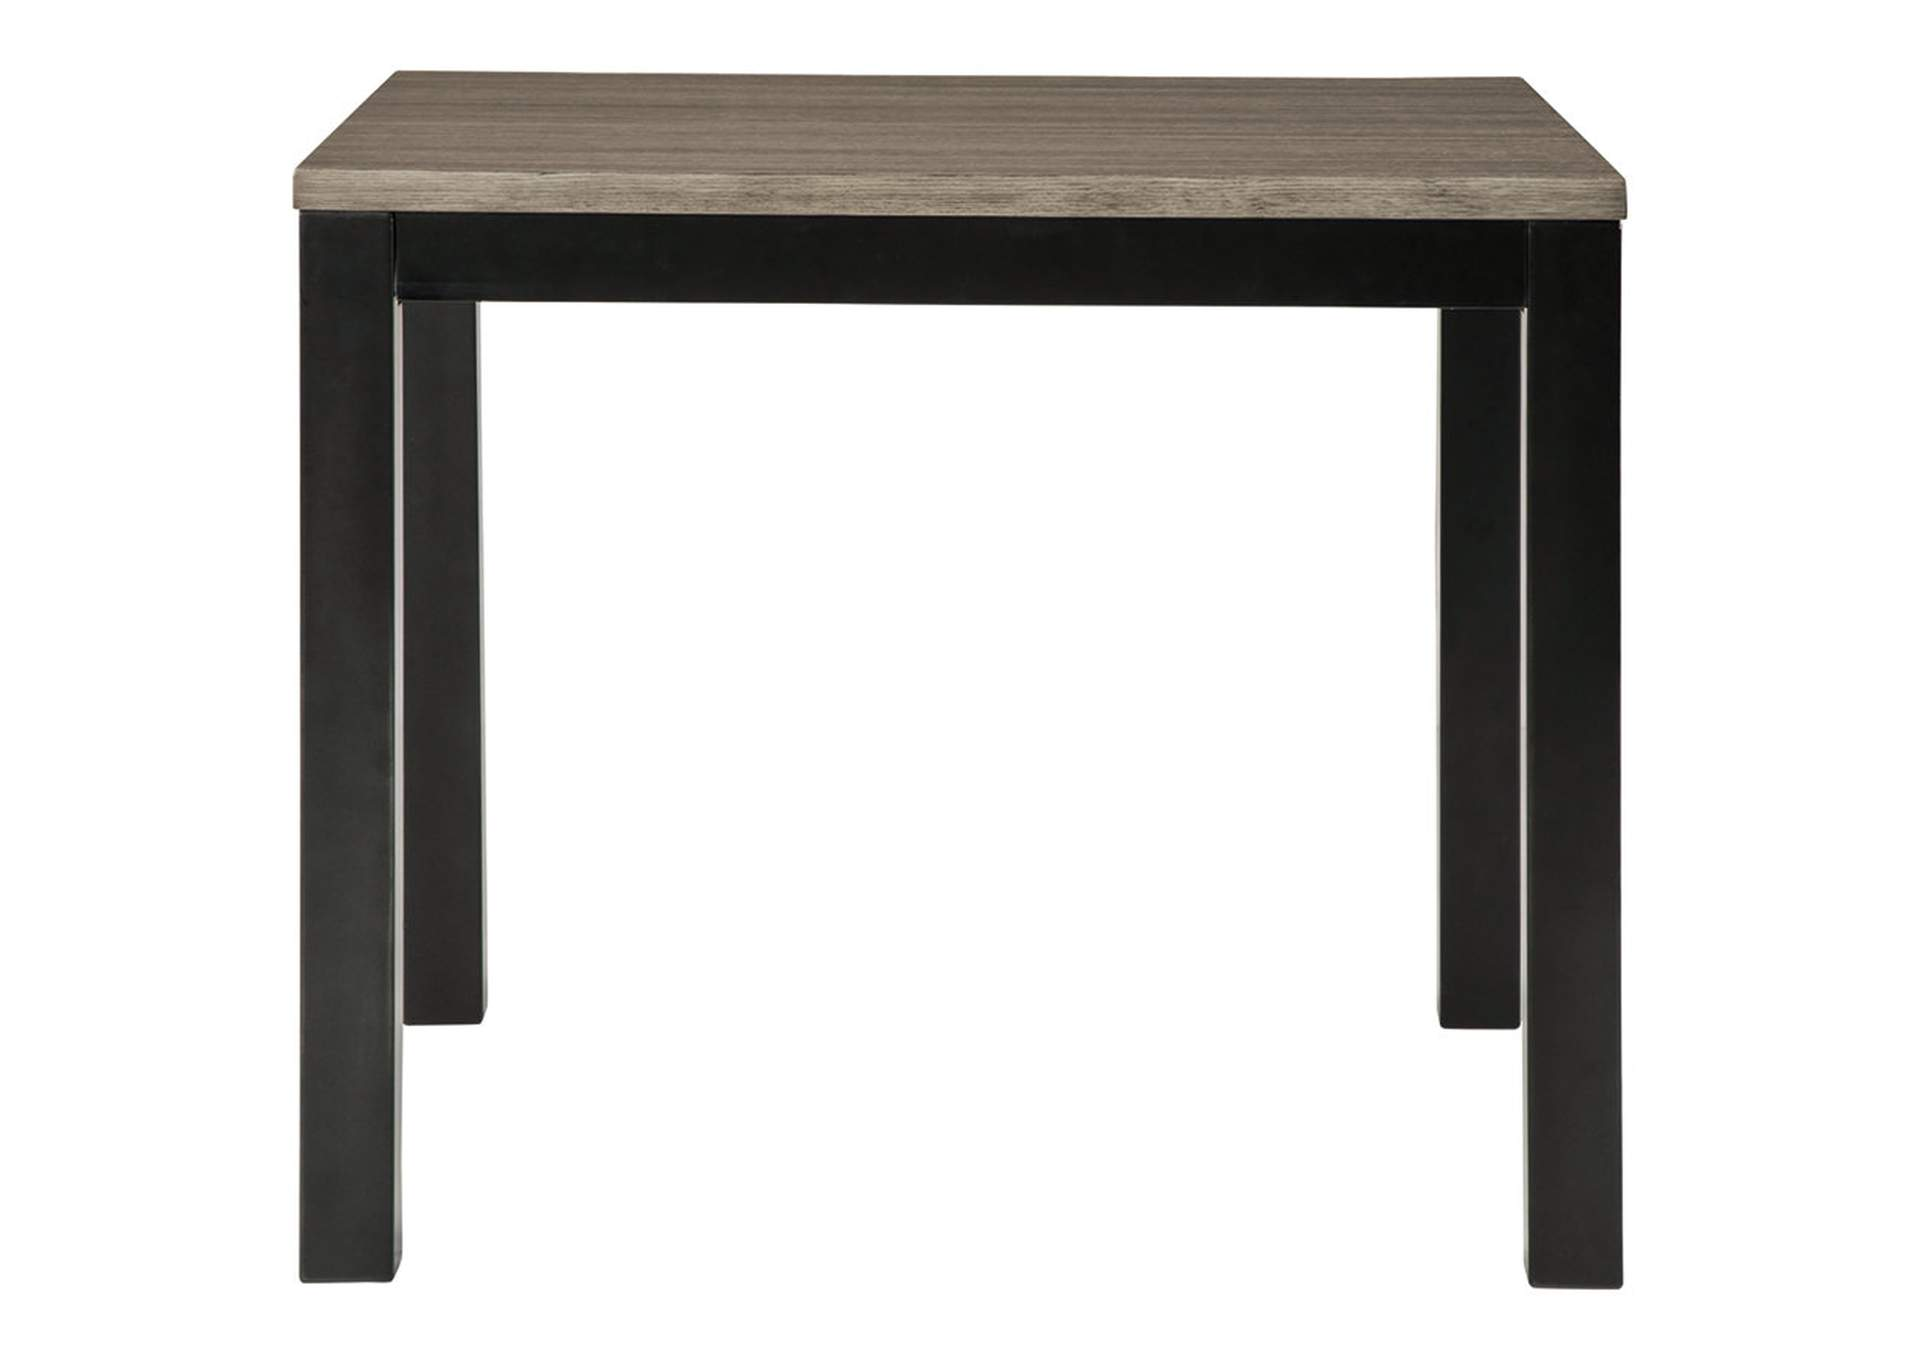 Dontally Counter Height Dining Room Table,Benchcraft